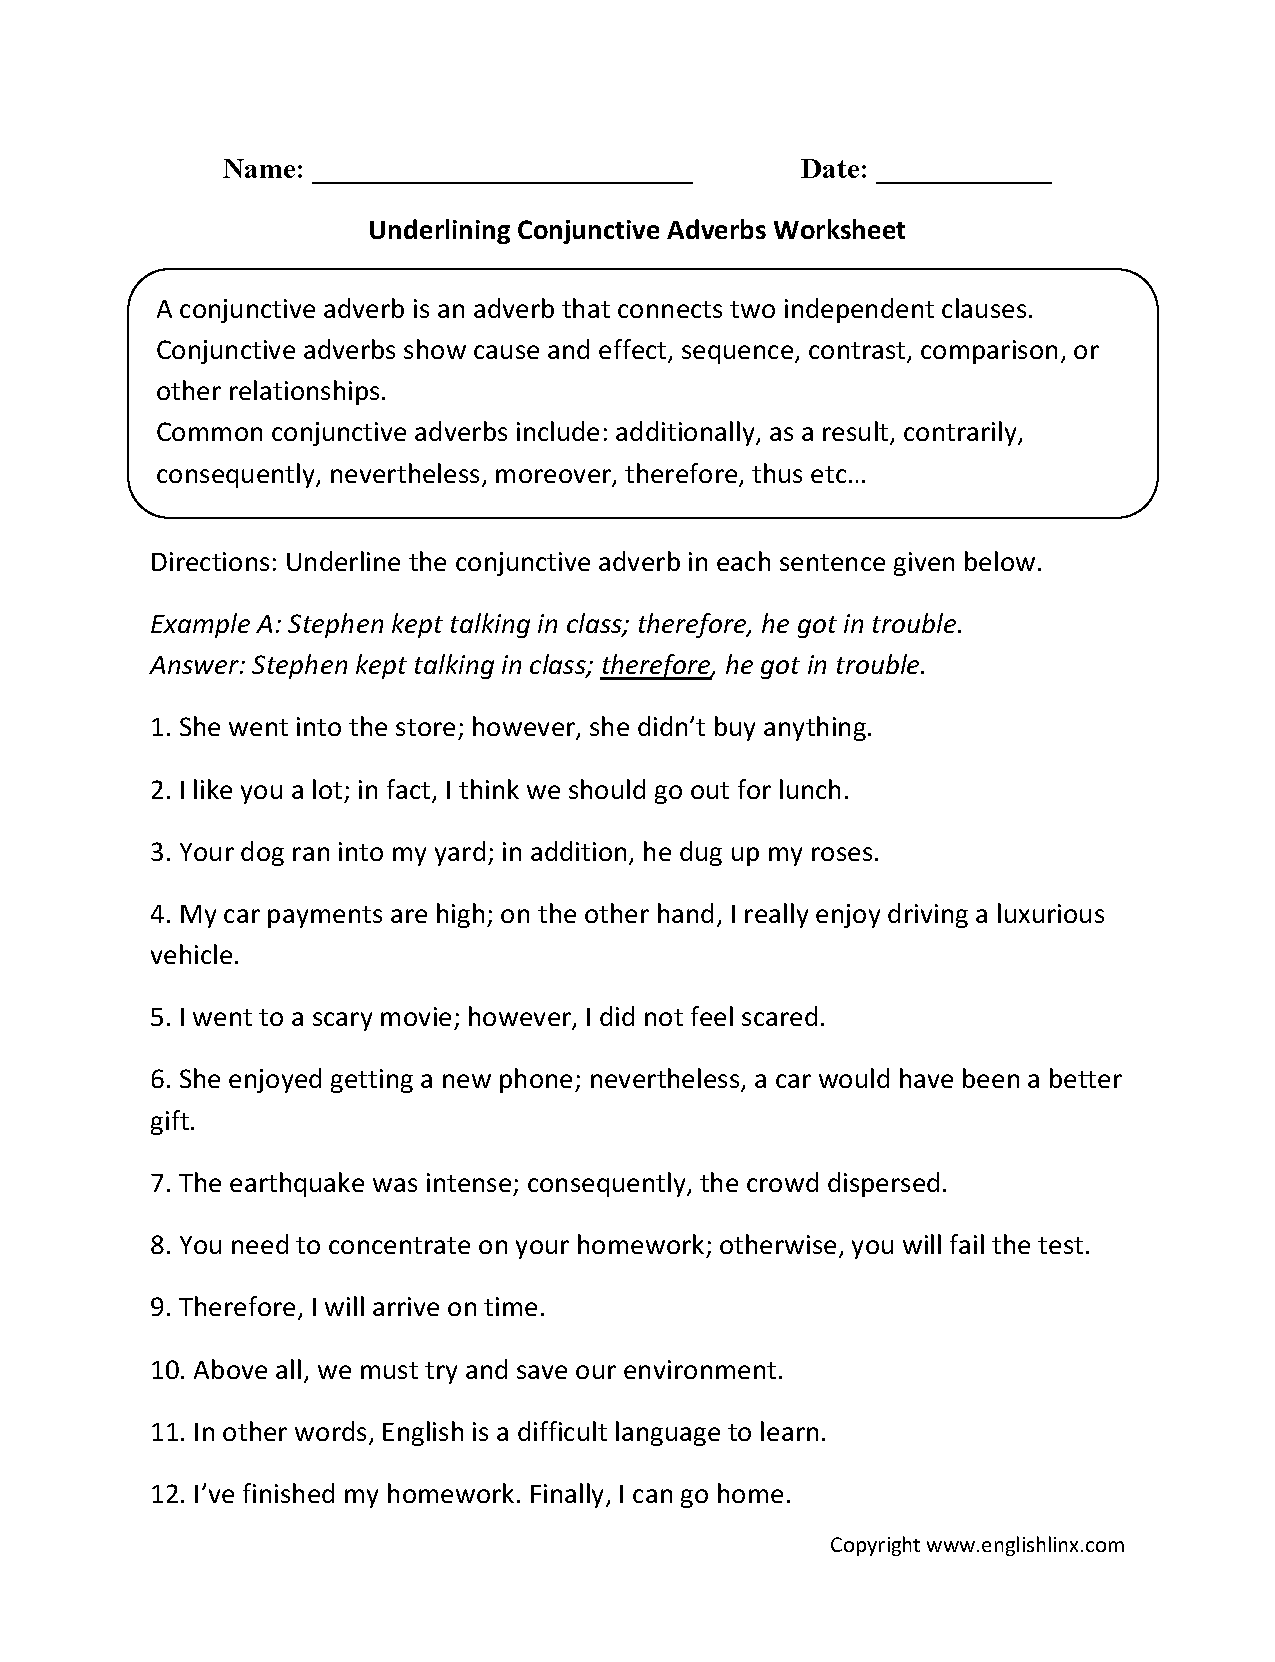 Proatmealus  Sweet Englishlinxcom  Conjunctions Worksheets With Likable Worksheet With Enchanting Activity Worksheets For Kindergarten Also Free Worksheet Templates In Addition Half Past Time Worksheets And Free Rocket Math Worksheets As Well As Th Grade Language Worksheets Additionally Division Puzzle Worksheets From Englishlinxcom With Proatmealus  Likable Englishlinxcom  Conjunctions Worksheets With Enchanting Worksheet And Sweet Activity Worksheets For Kindergarten Also Free Worksheet Templates In Addition Half Past Time Worksheets From Englishlinxcom